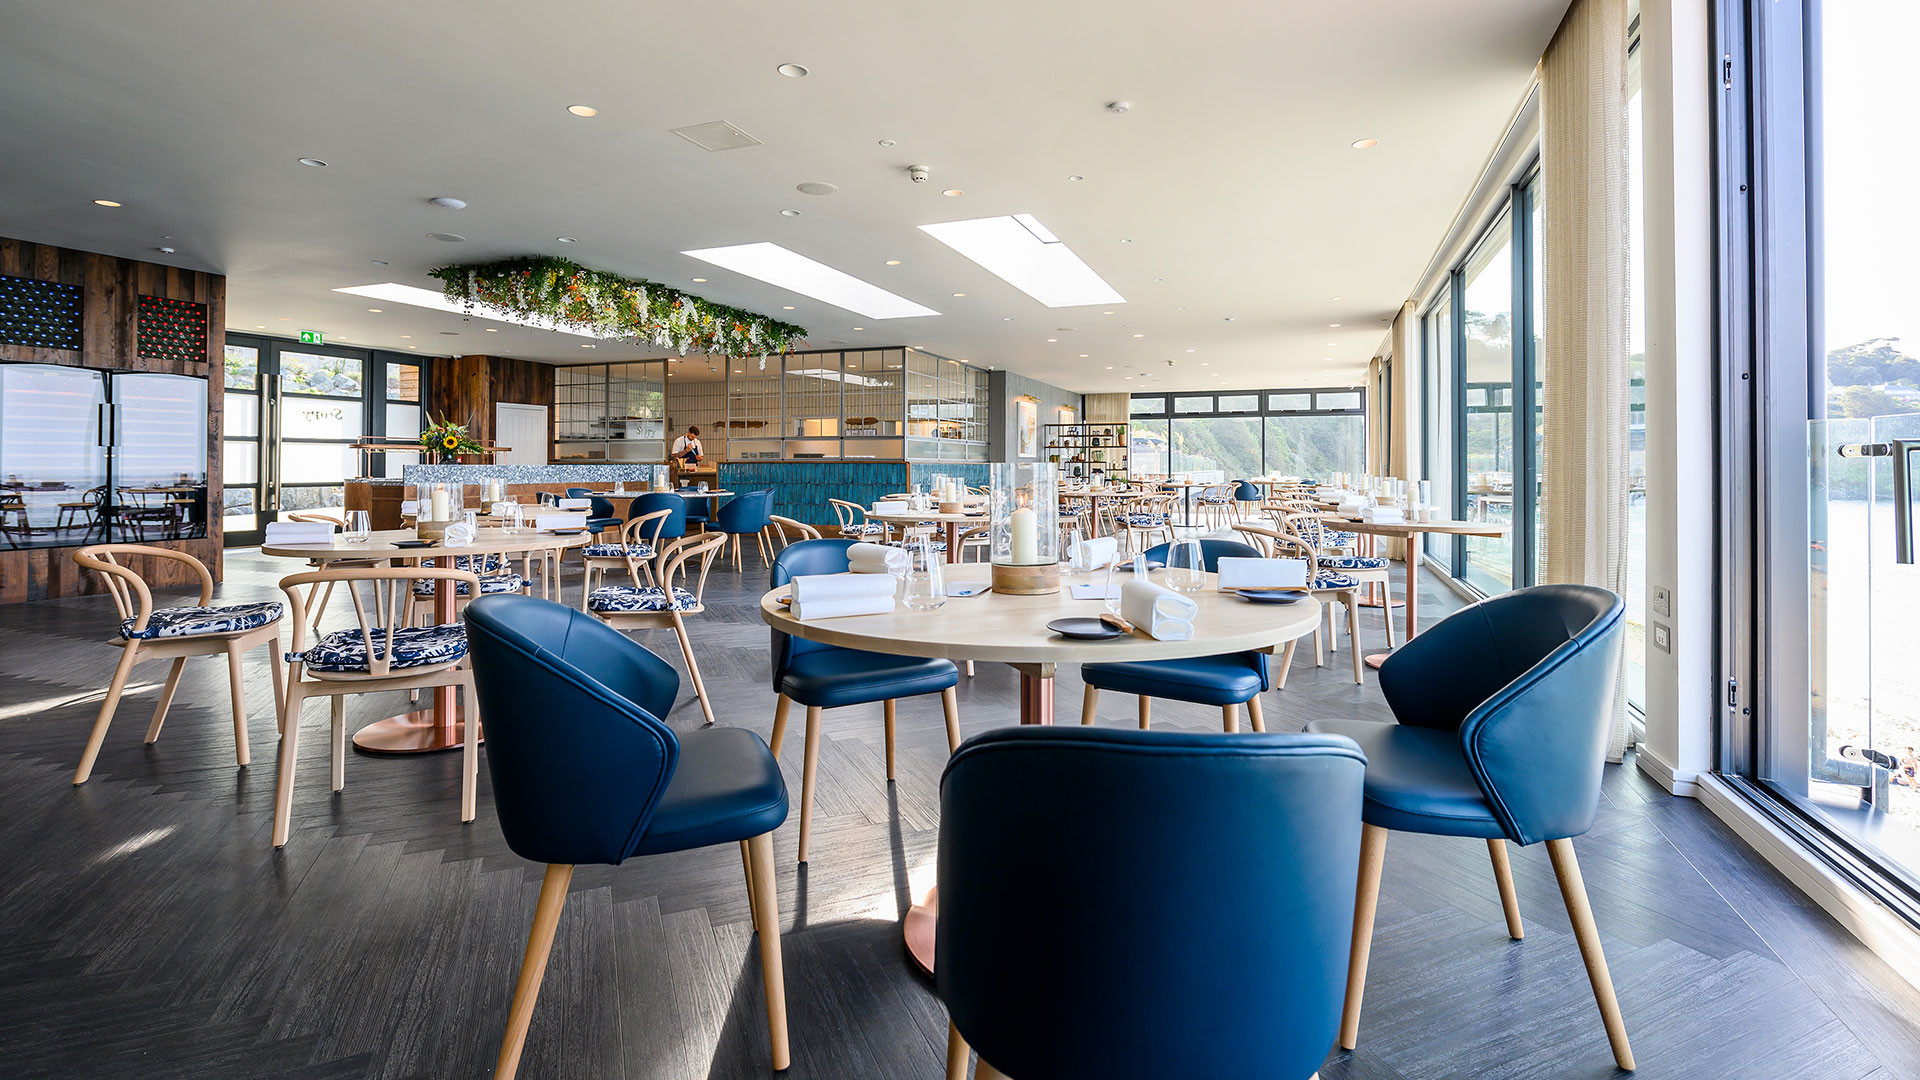 The dining room at Story by the Sea in Cornwall